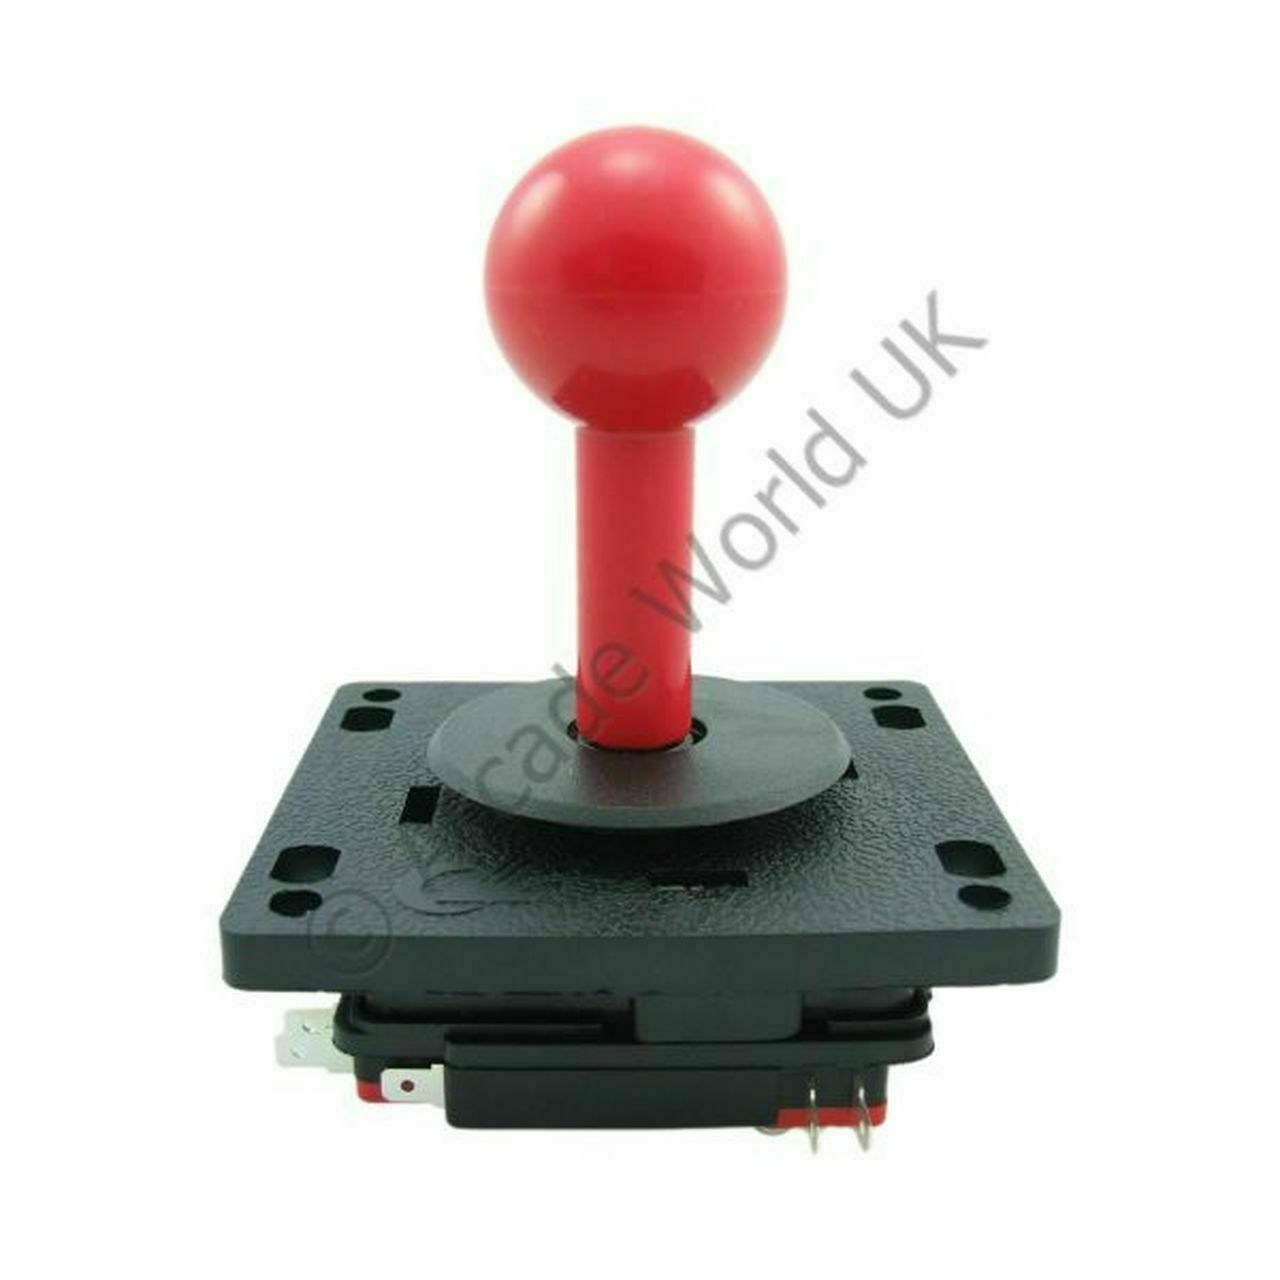 Red Moulded Arcade Joystick - Dedicated 8 Way Joystick With Fixed Handle